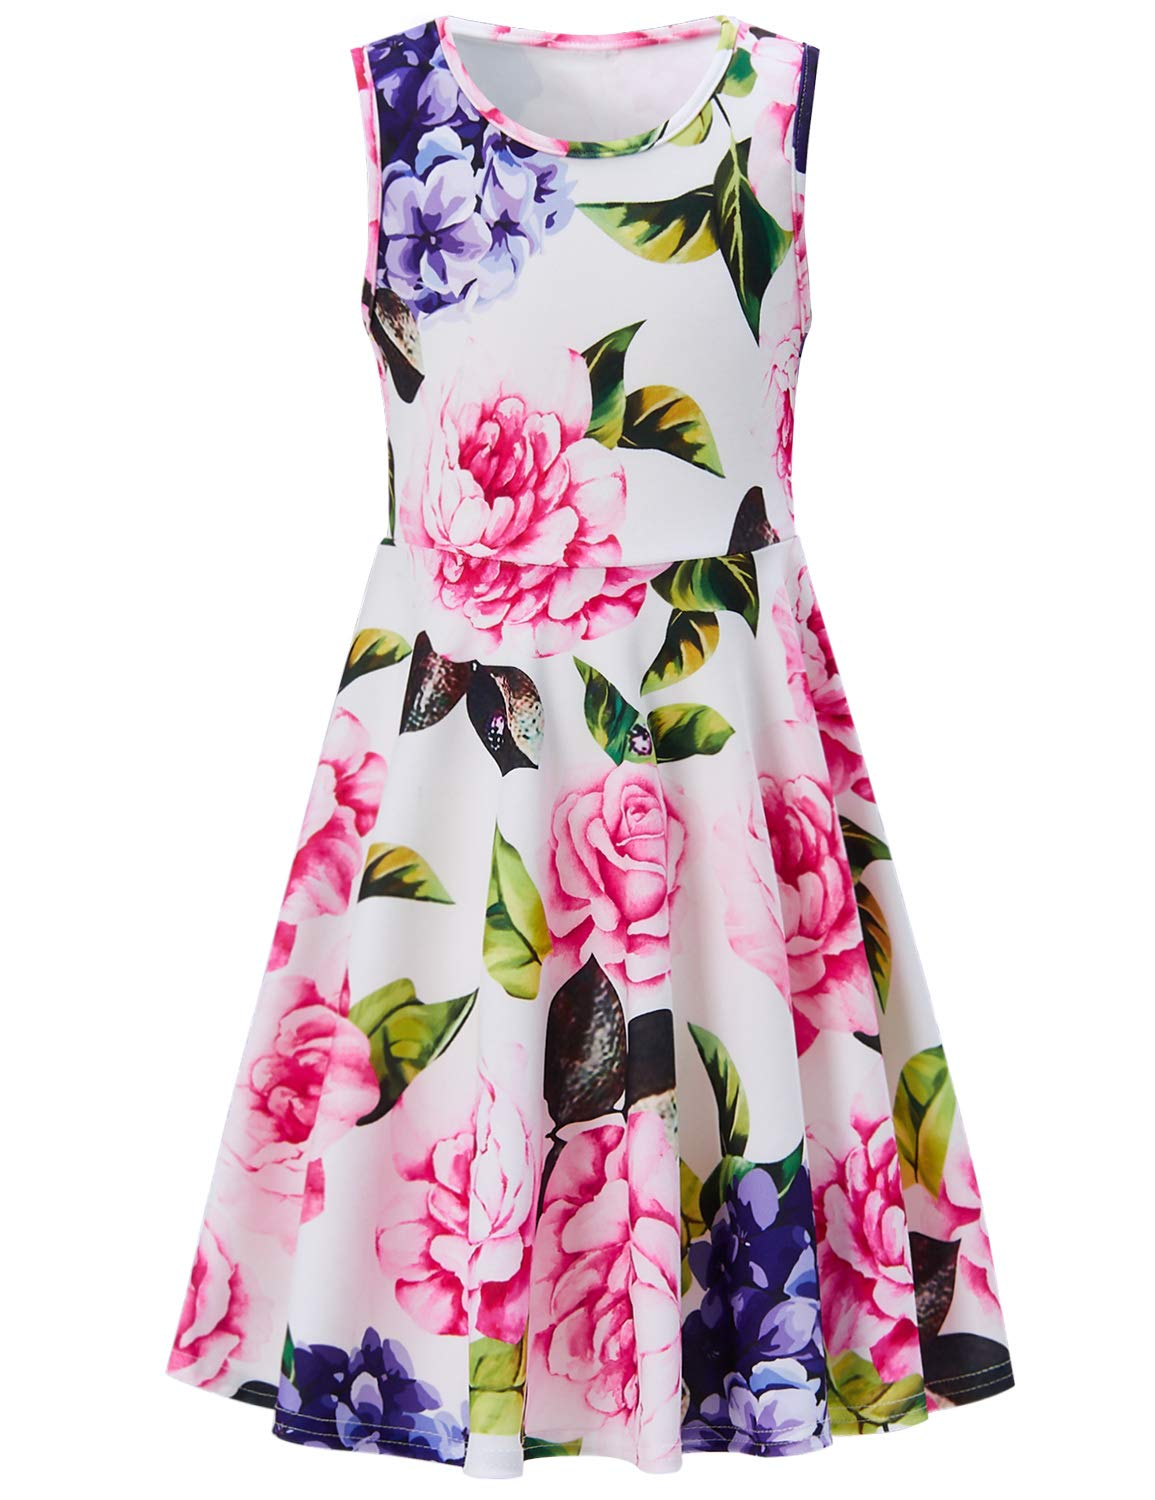 RAISEVERN Little Girls Vintage Sweet Pink Flower Dress Summer Sleeveless Floral Printing Casual/Party Bridesmaids(4-13Years)